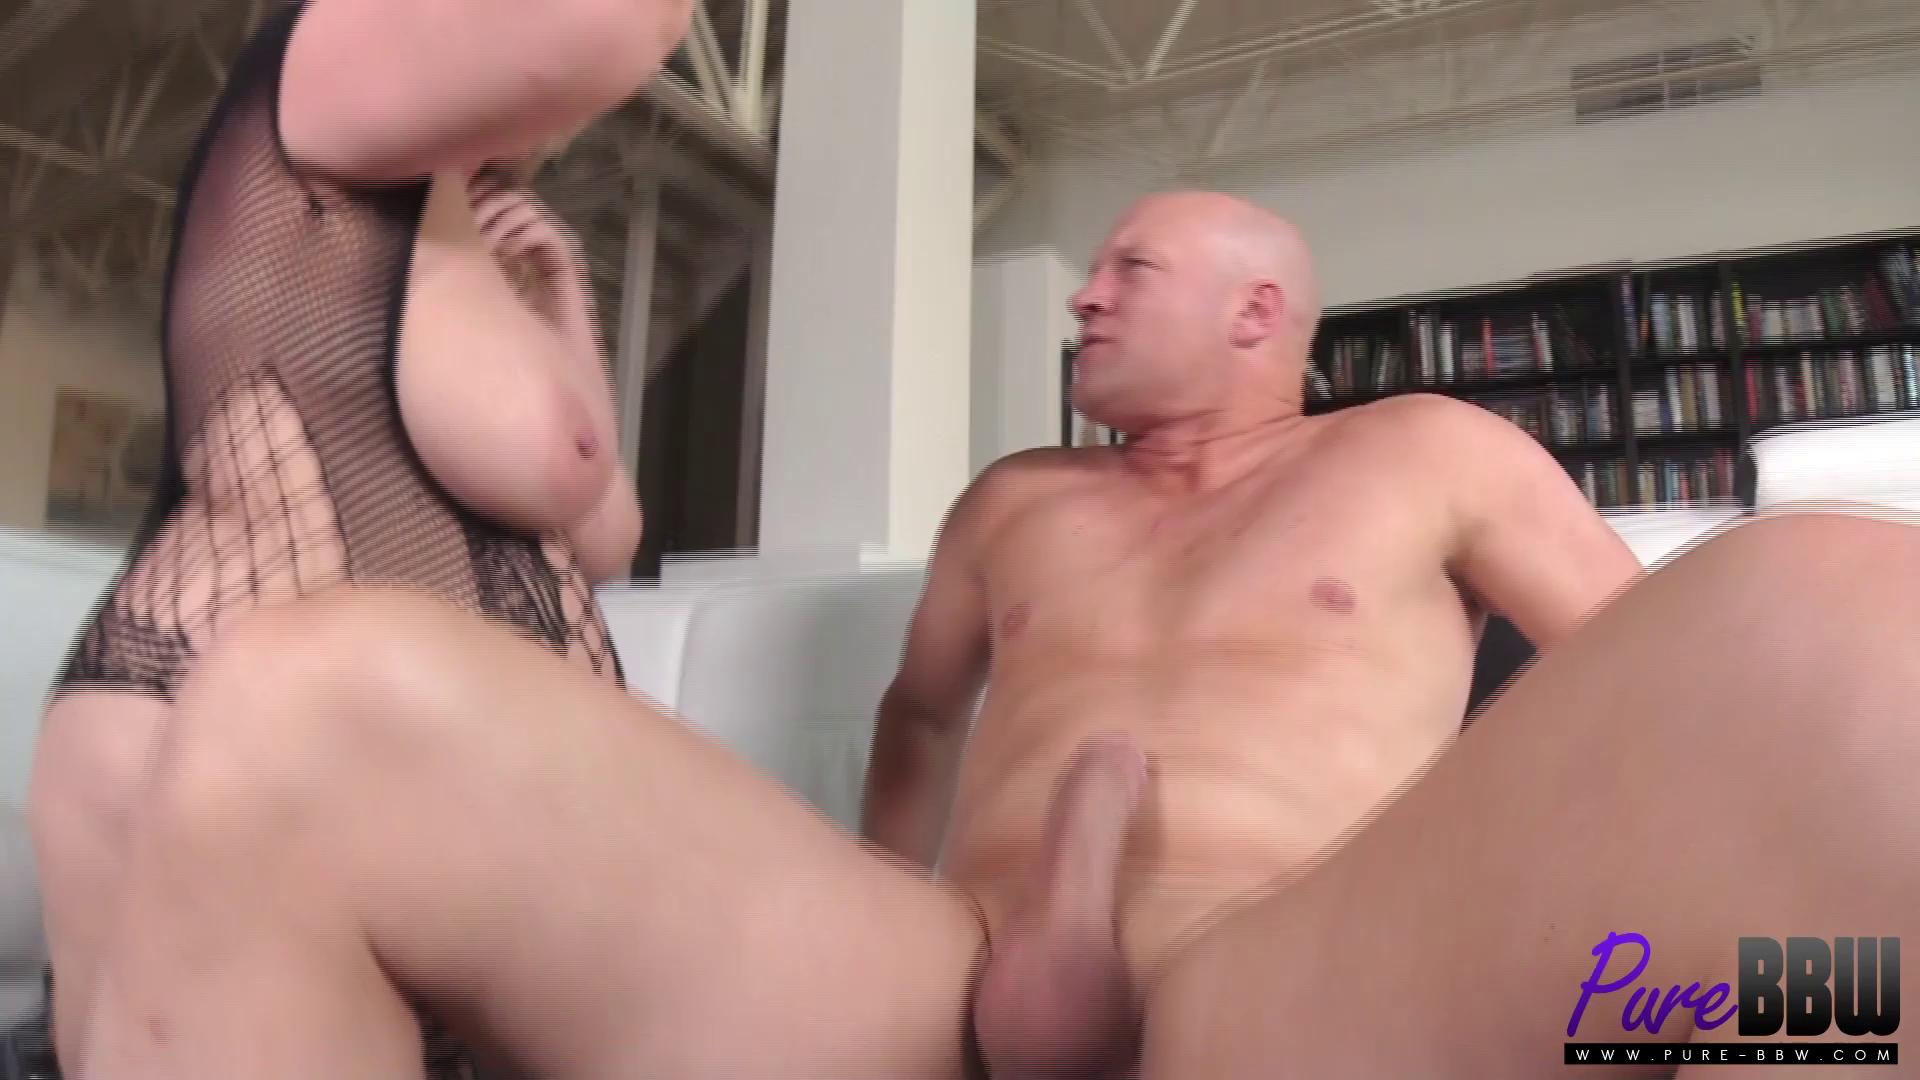 Pure-BBW – Lila Lovely Amazon Blonde Takes It In The Ass Like A Champ